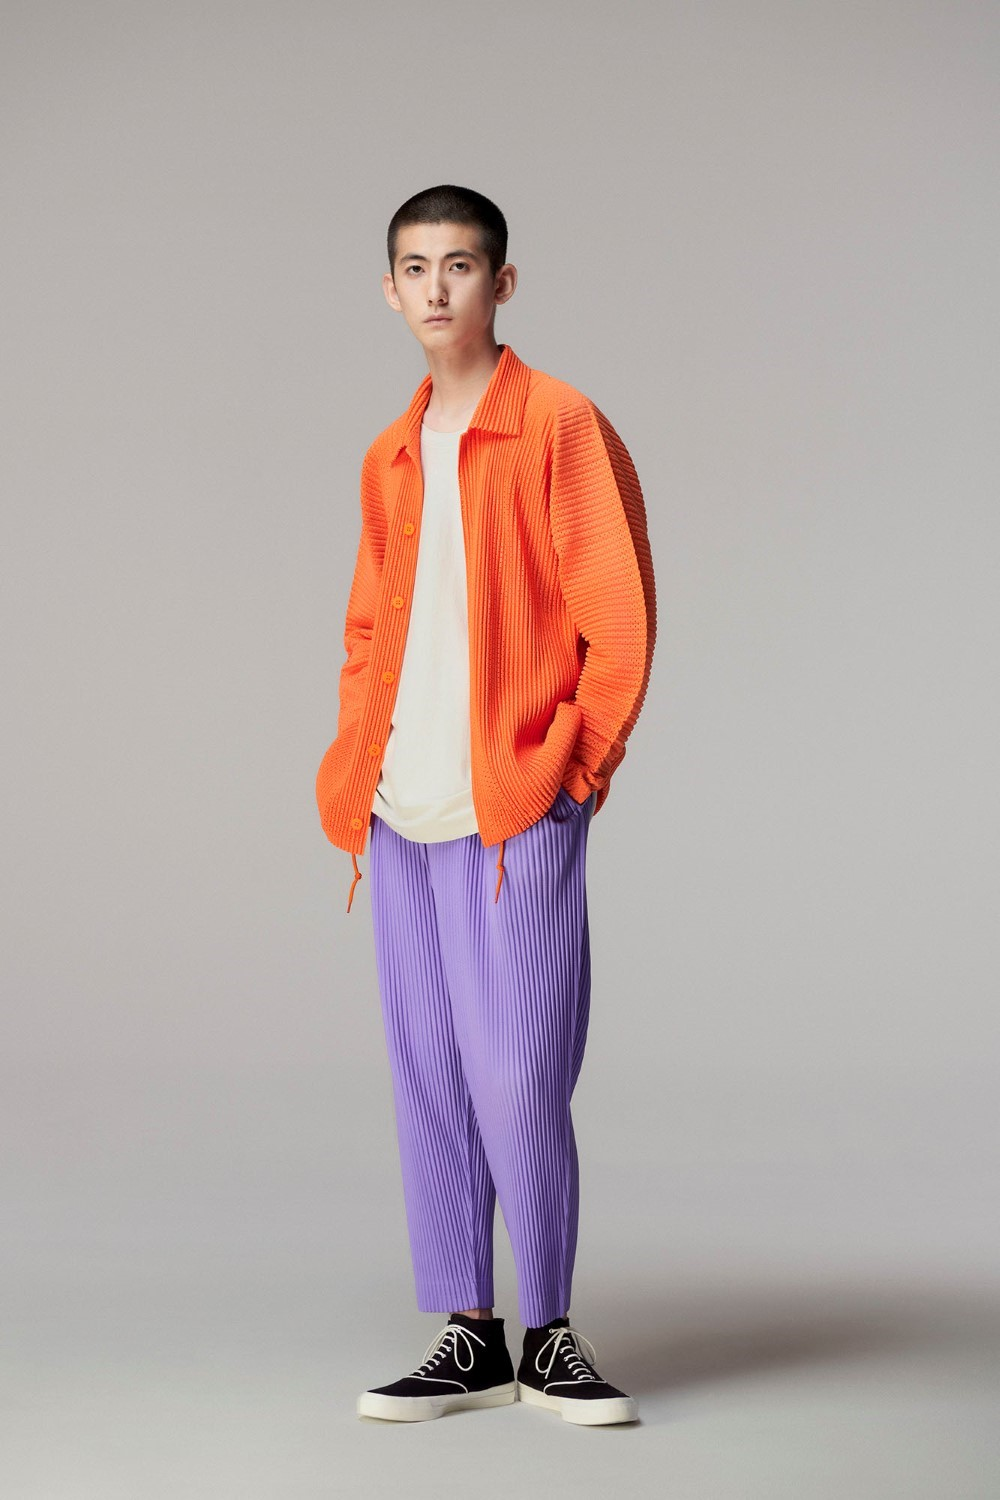 HOMME PLISSÉ ISSEY MIYAKE - Spring Summer 2021 - Paris Fashion Week Men's